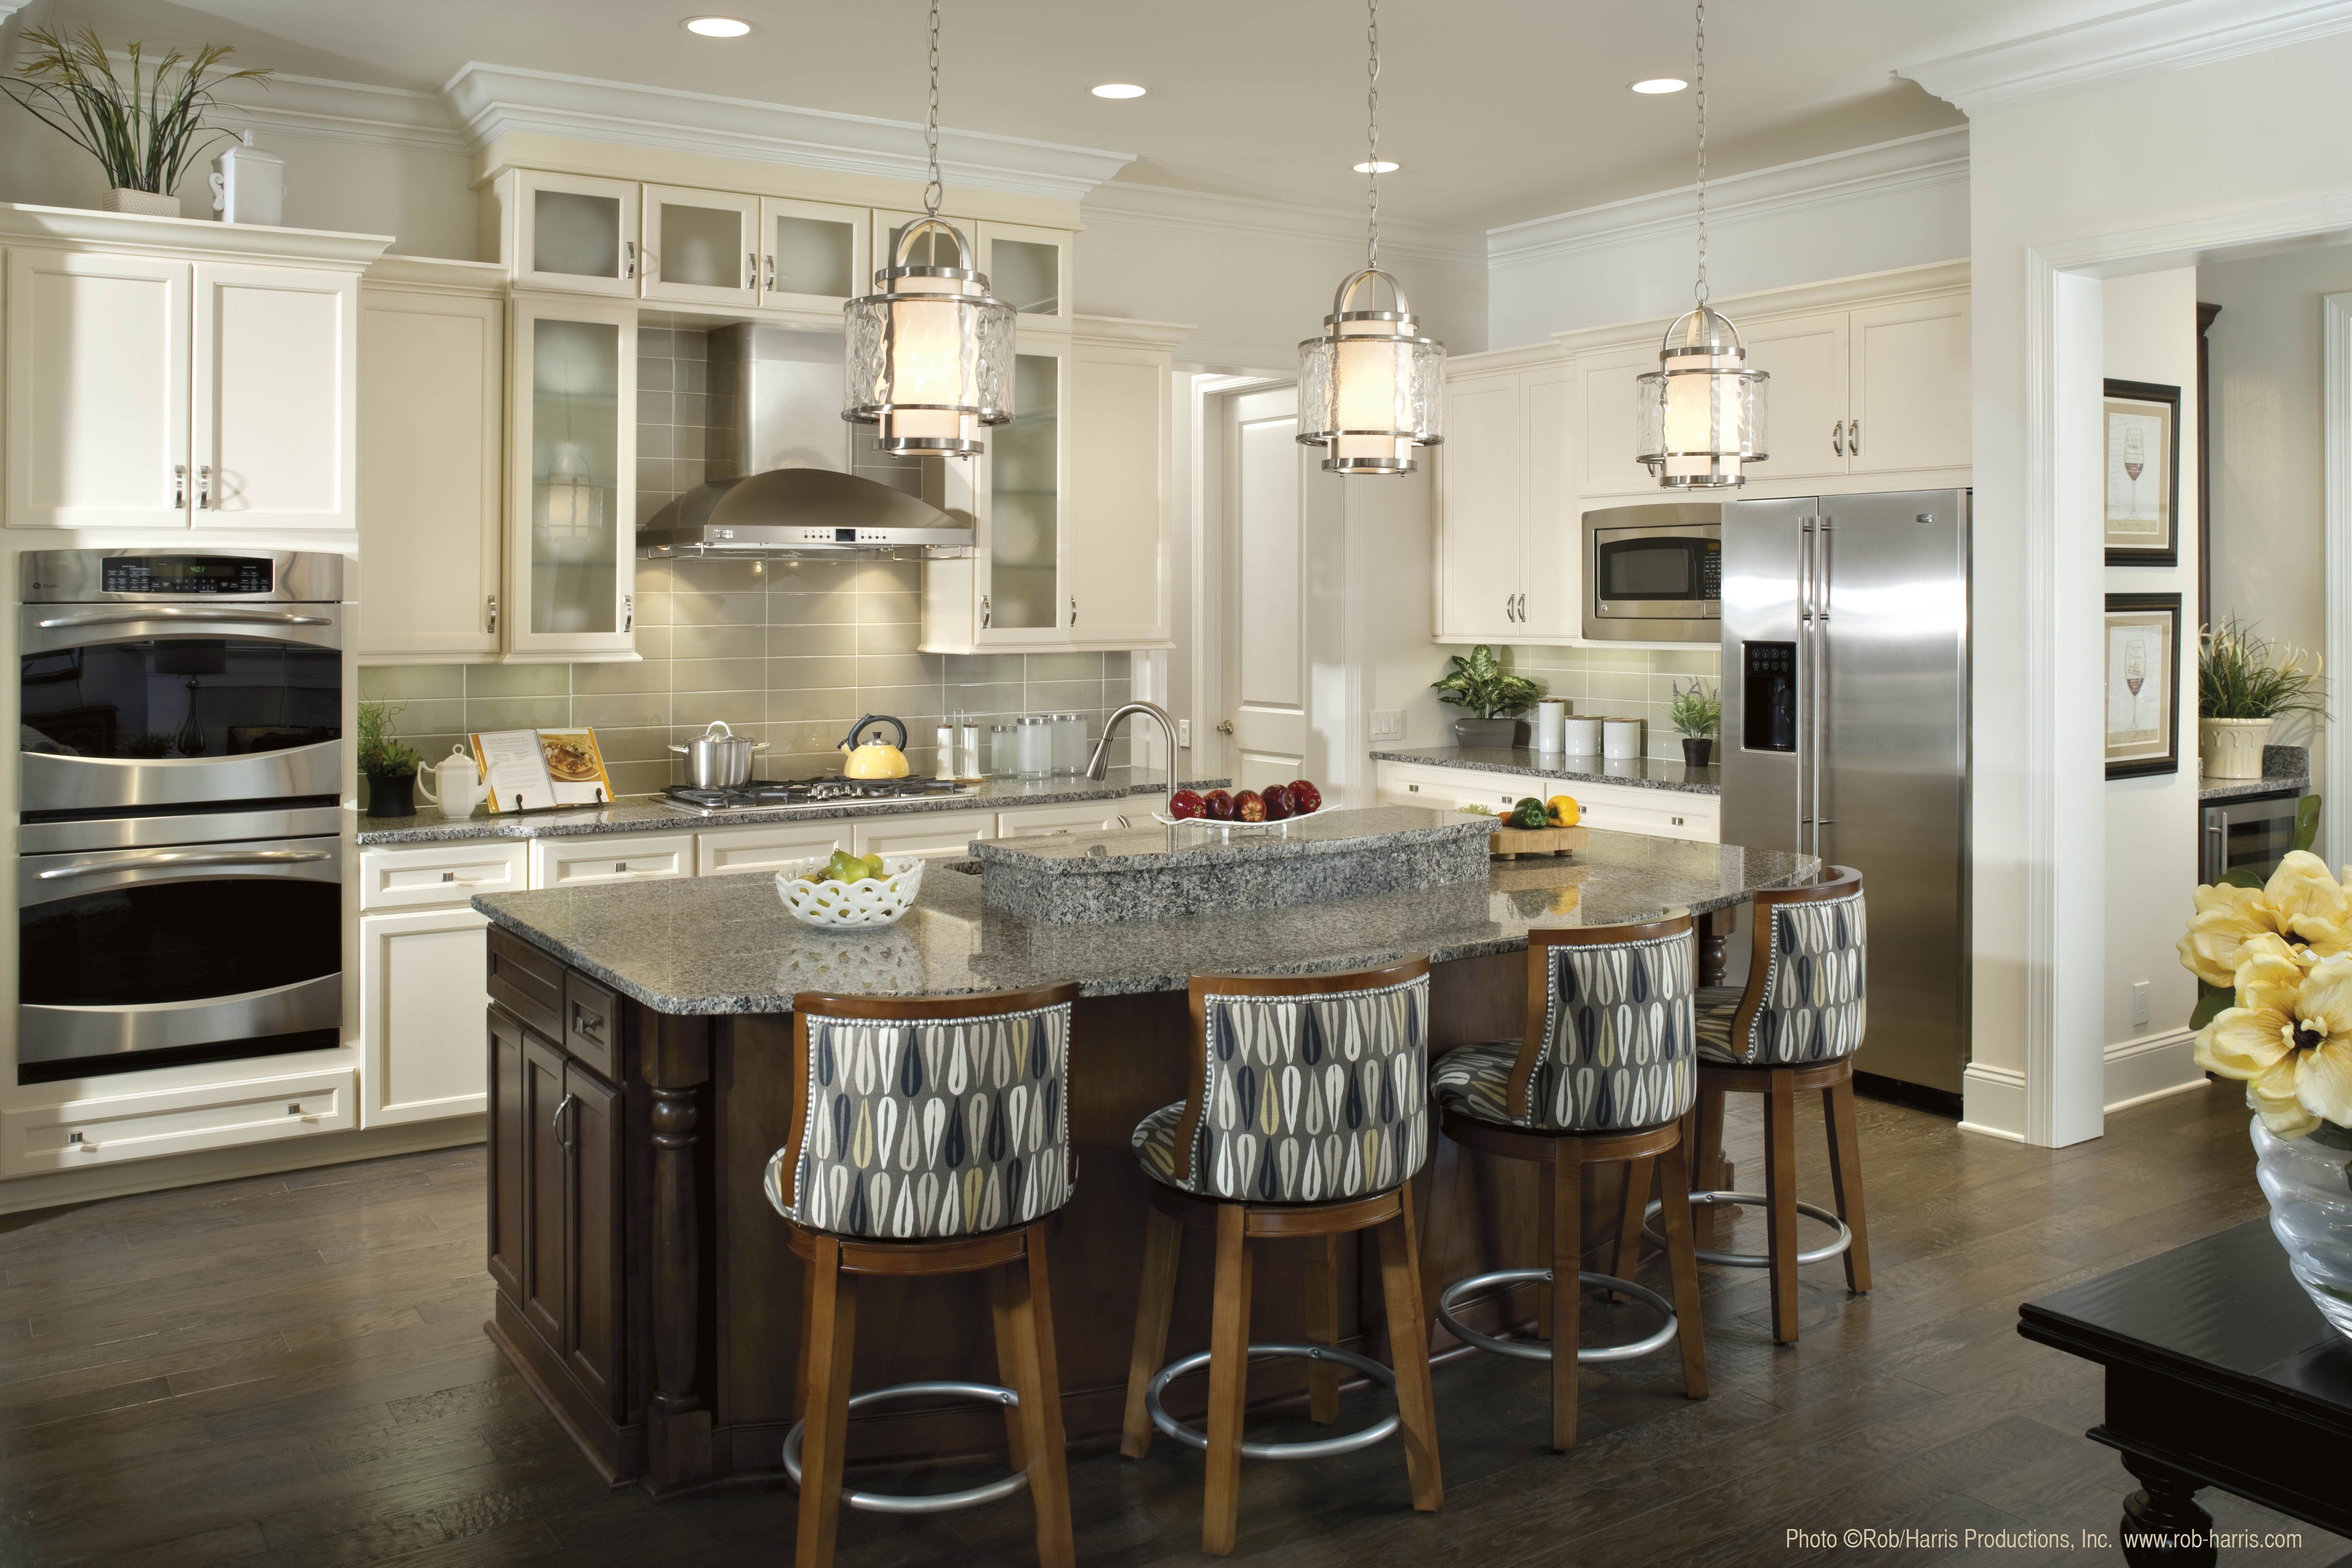 Permalink to Inspirational Kitchen island Lighting Pendants